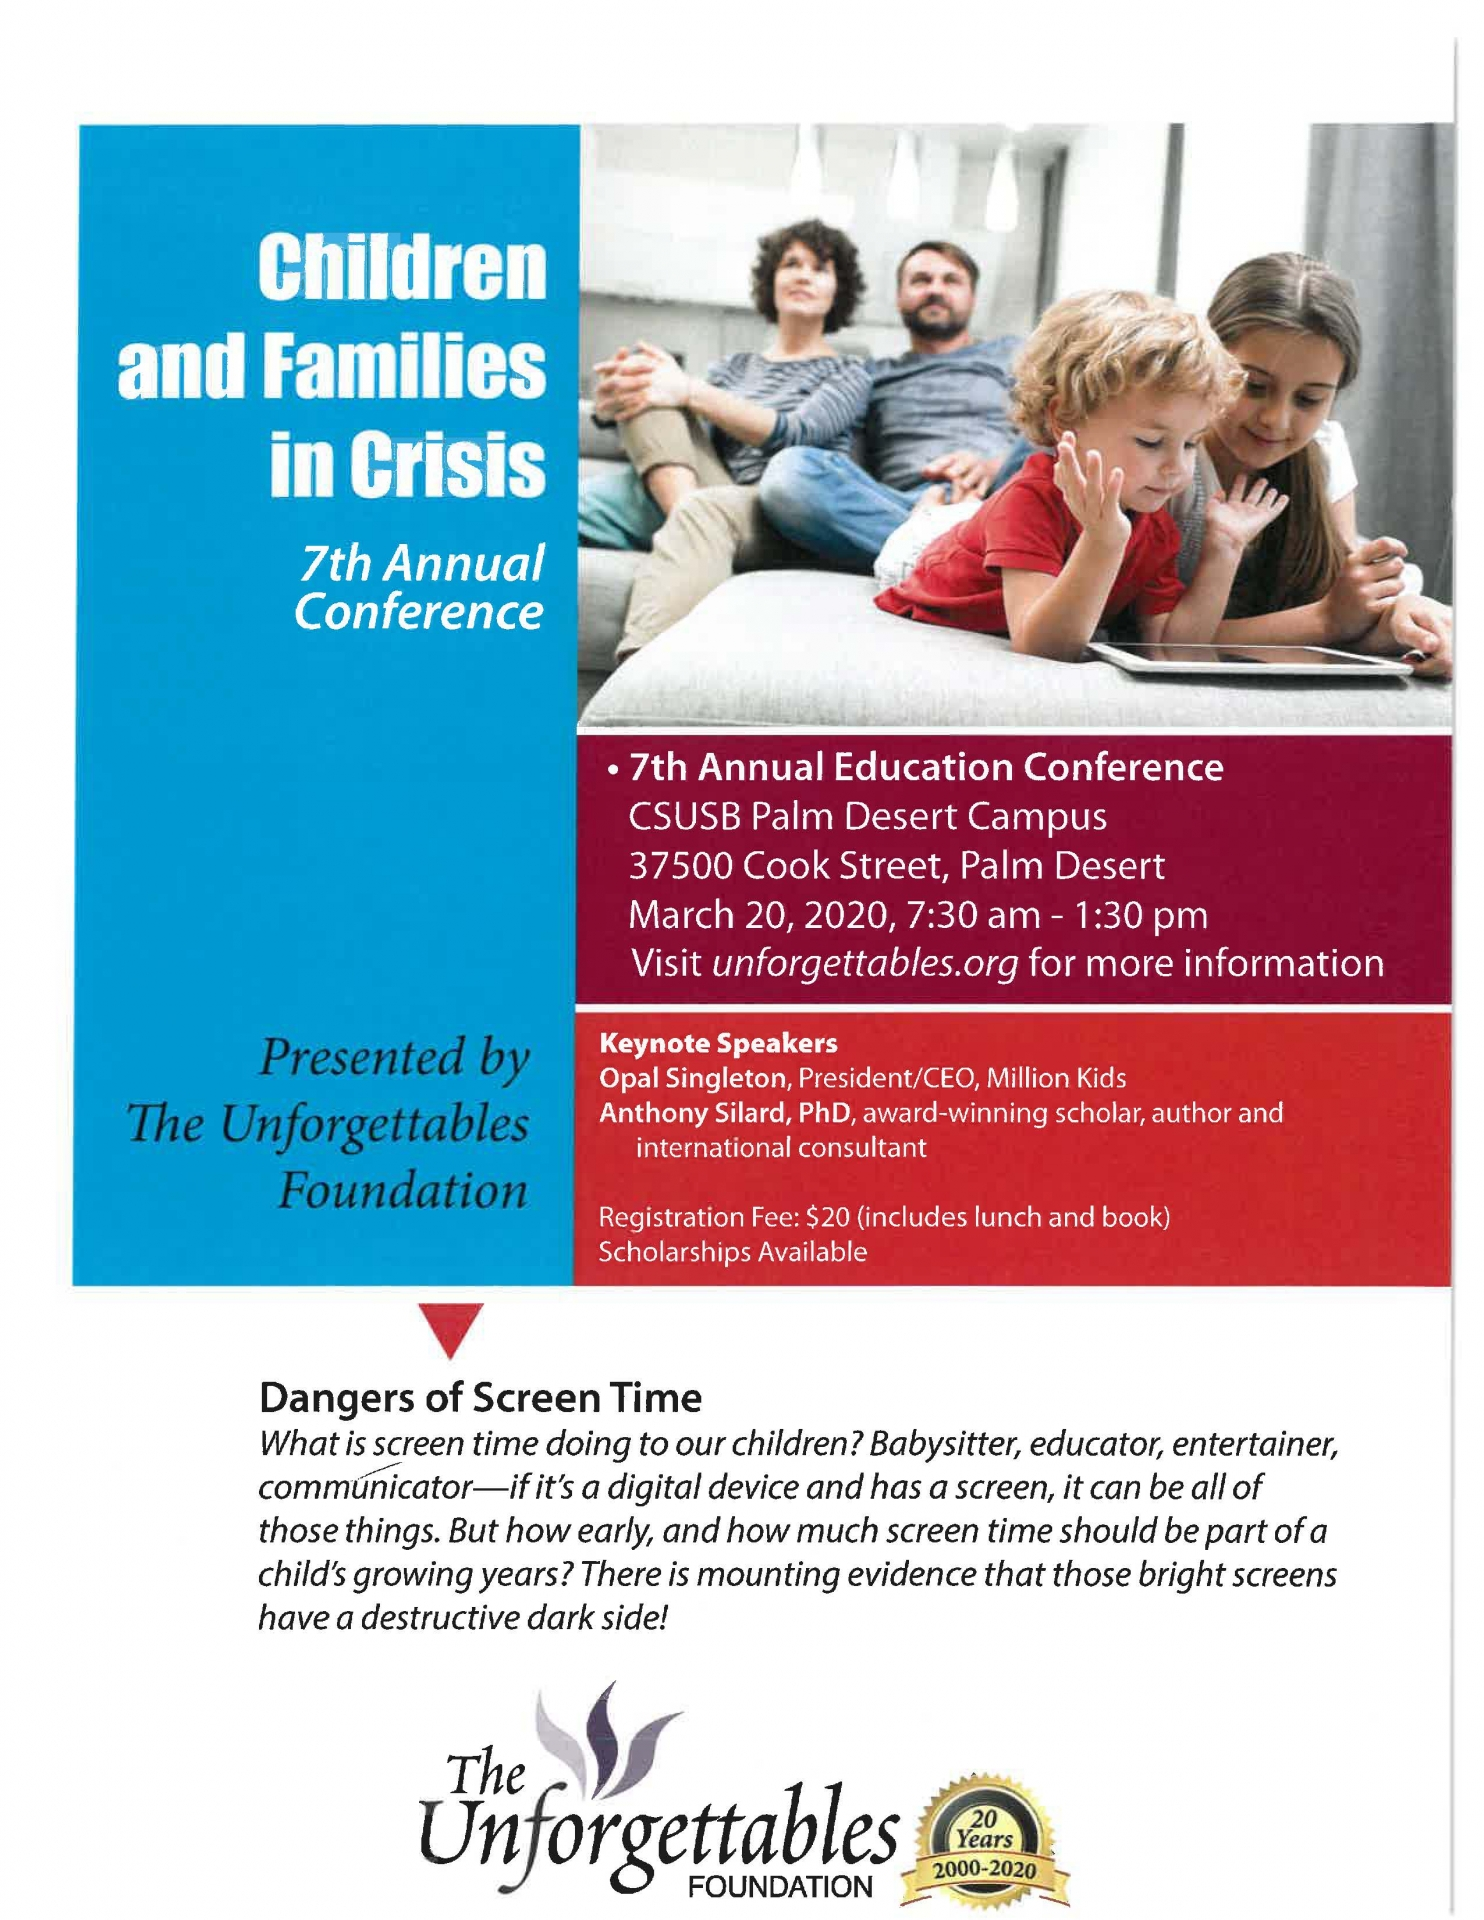 Families in Crisis event